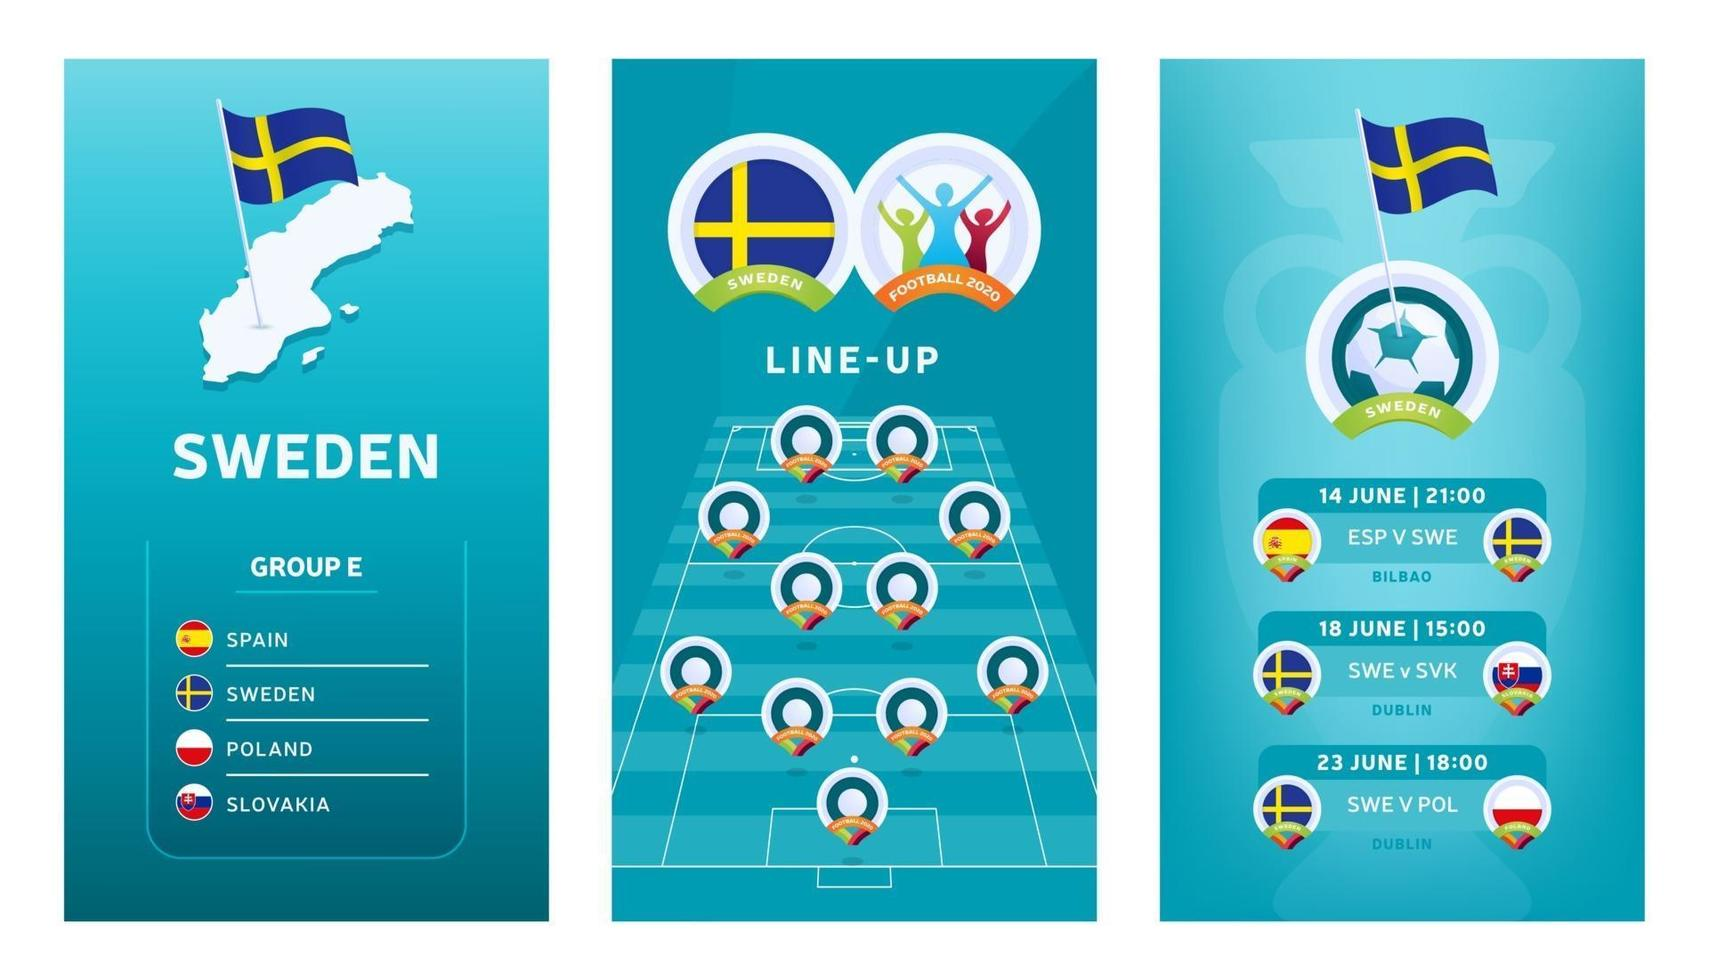 European 2020 football vertical banner set for social media. Sweden group E banner with isometric map, pin flag, match schedule and line-up on soccer field vector